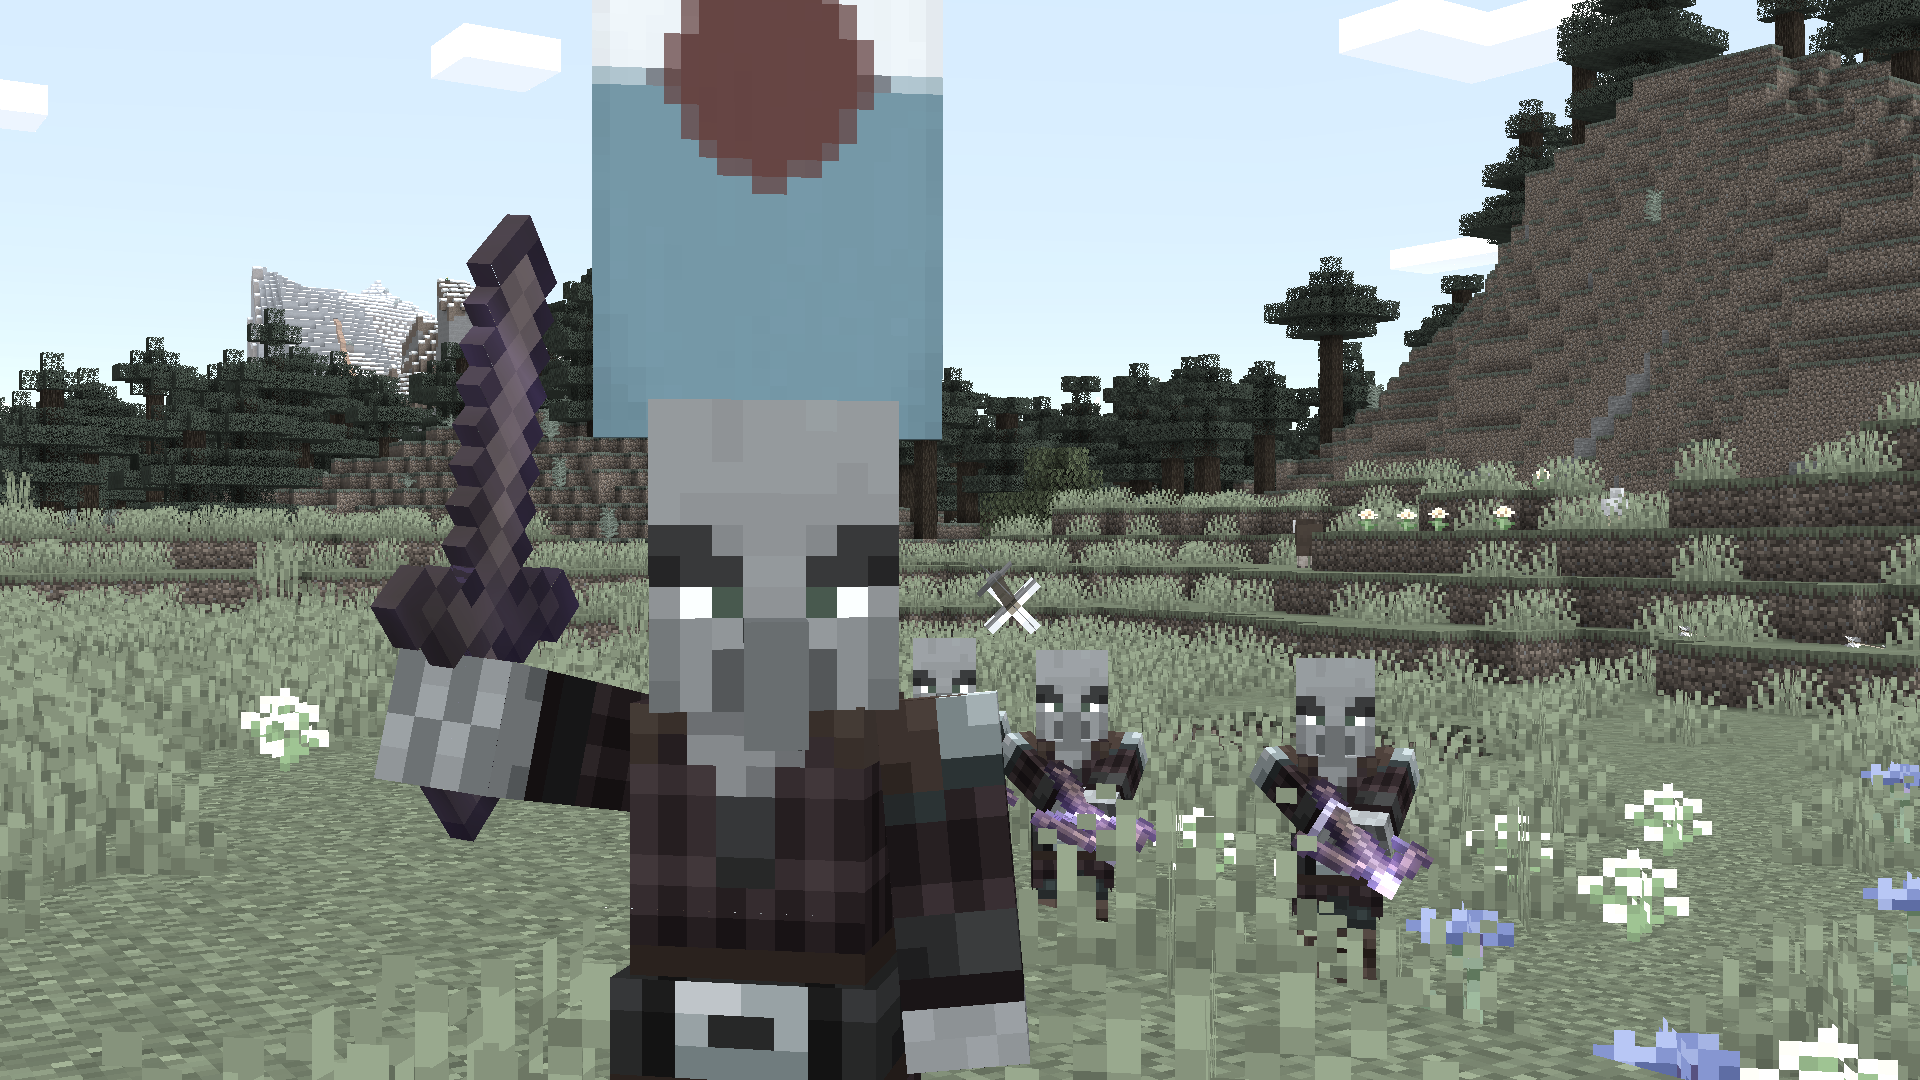 Vampire Hunters attacking the player